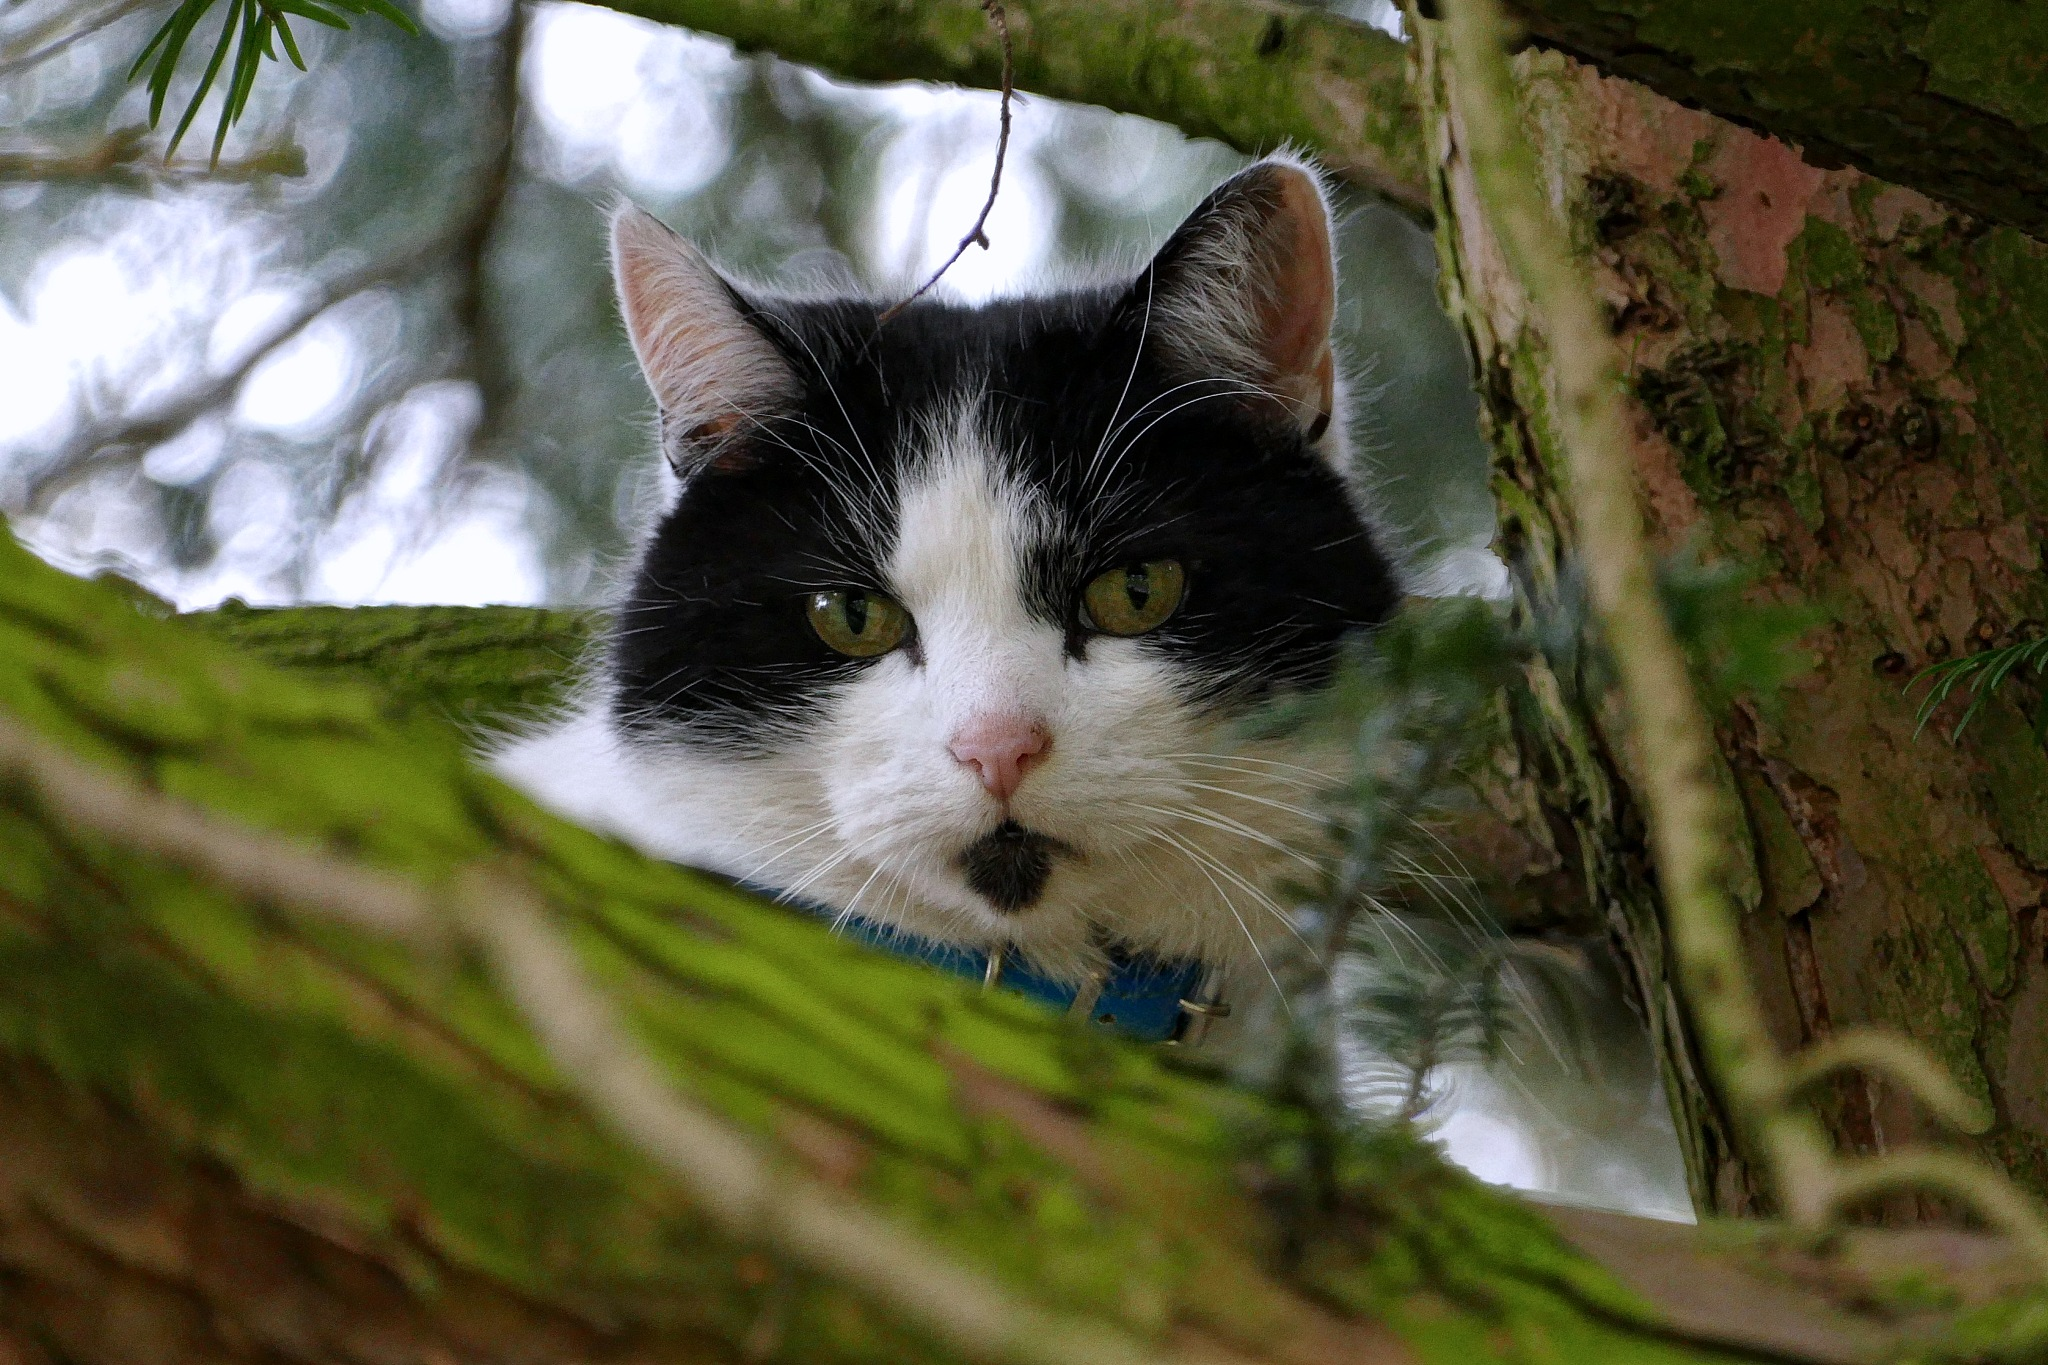 Cat Up A Tree by Steven Iodice